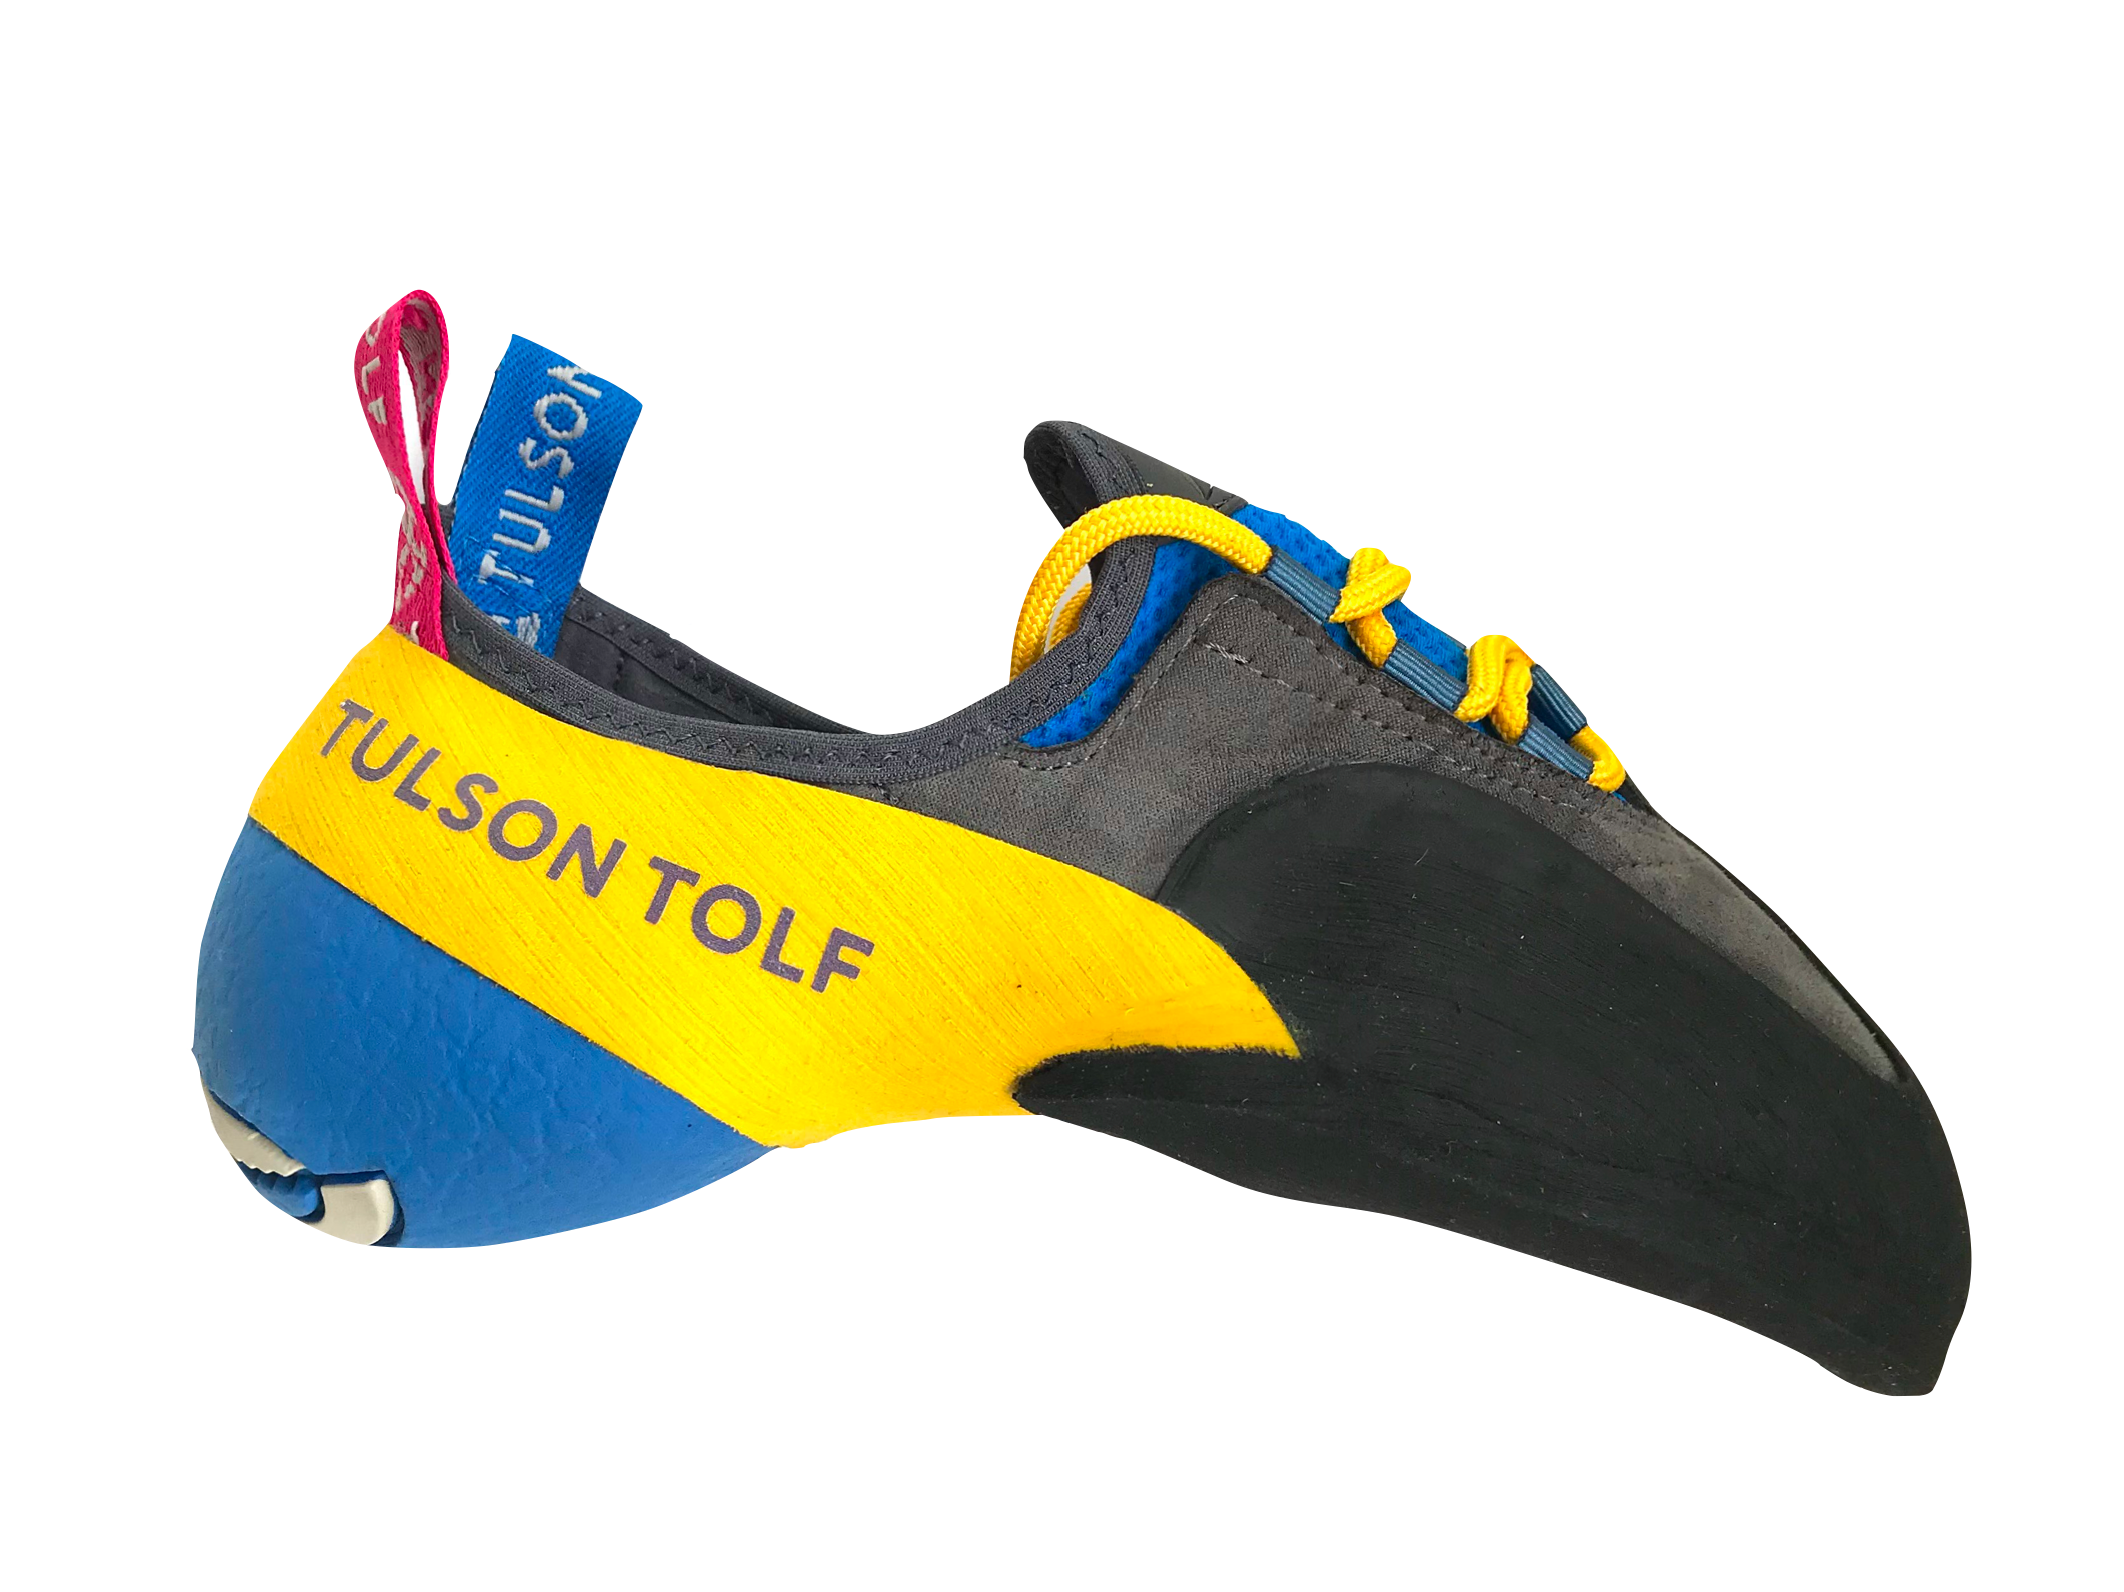 GRADE TULSON TOLF WOMEN BEST CLIMBING SHOES